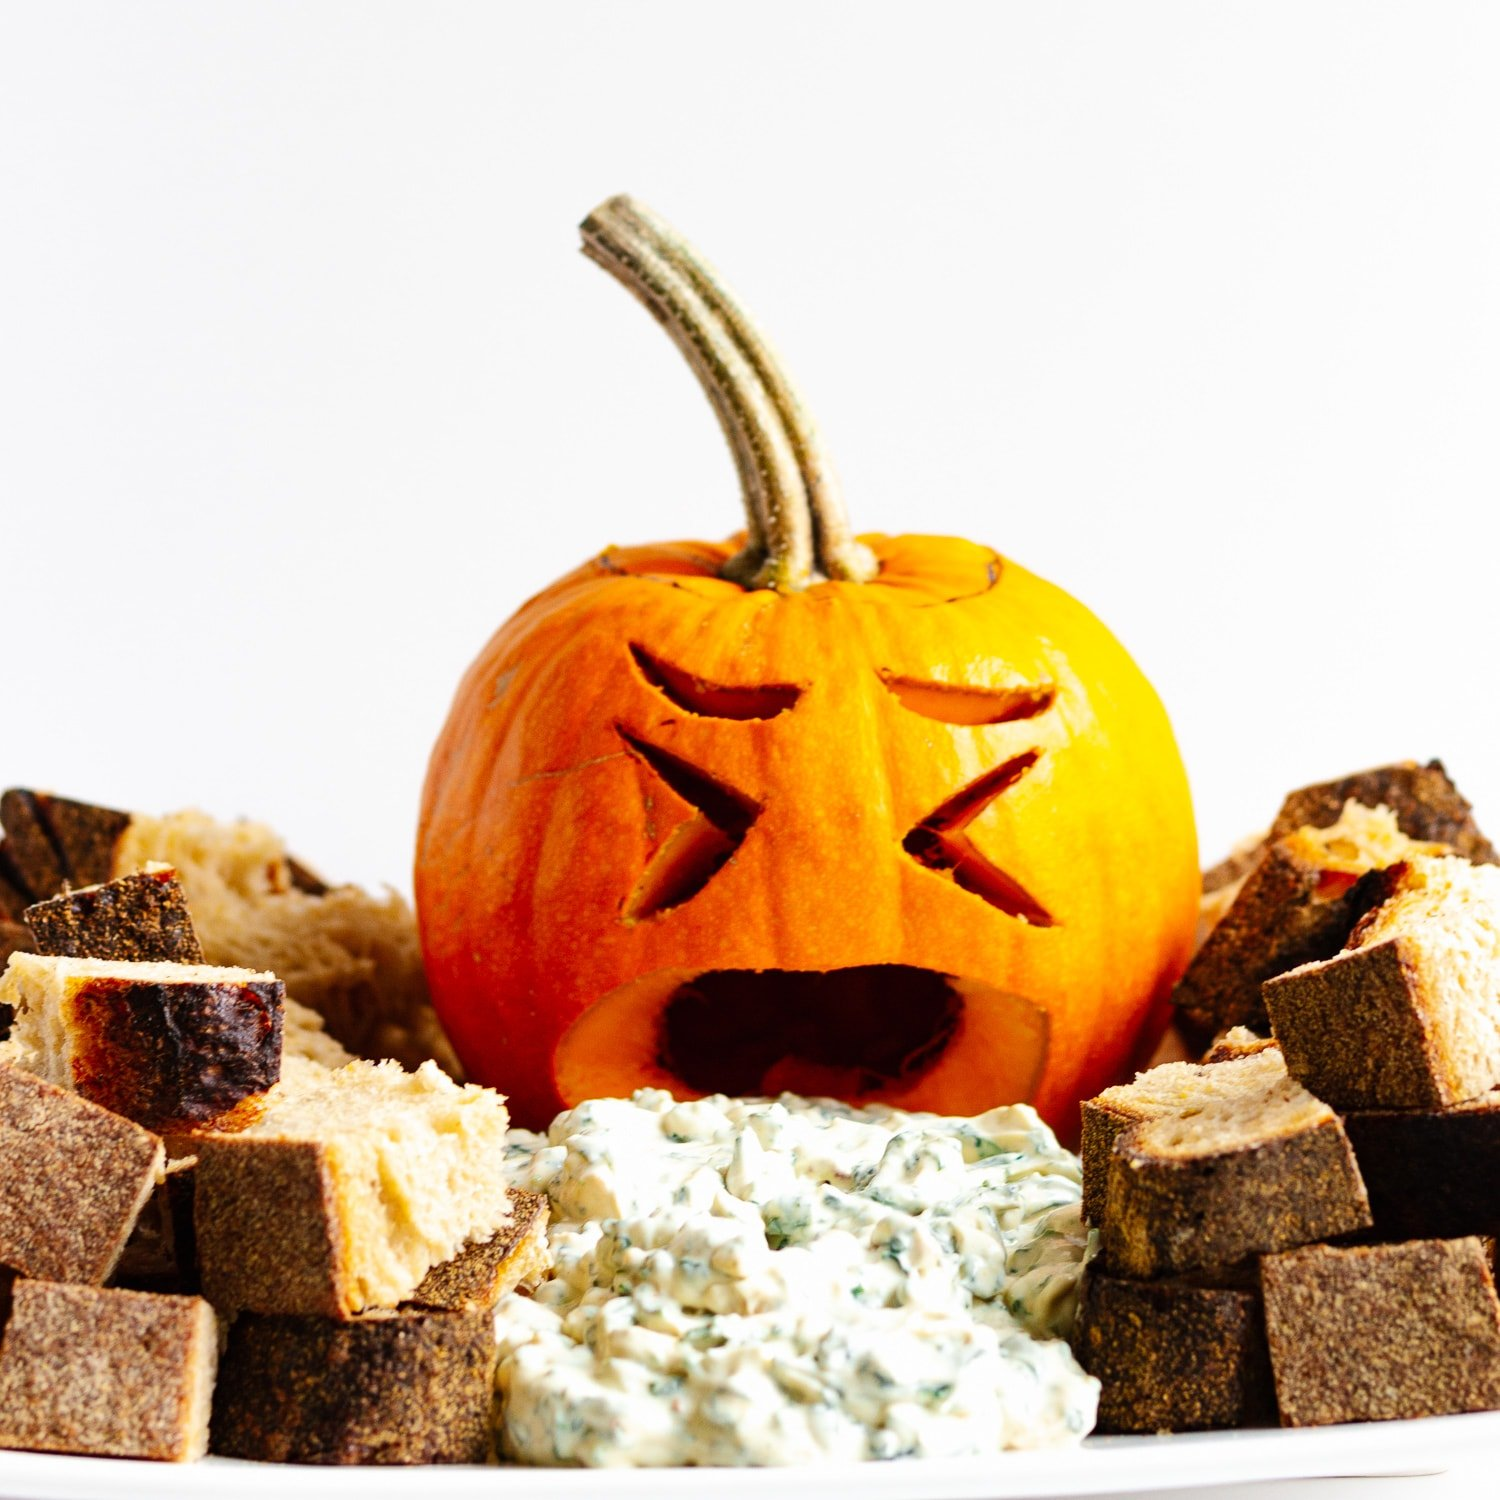 Small carved jack o' lantern with spinach dip pouring out of its mouth and surrounded by bread cubes.